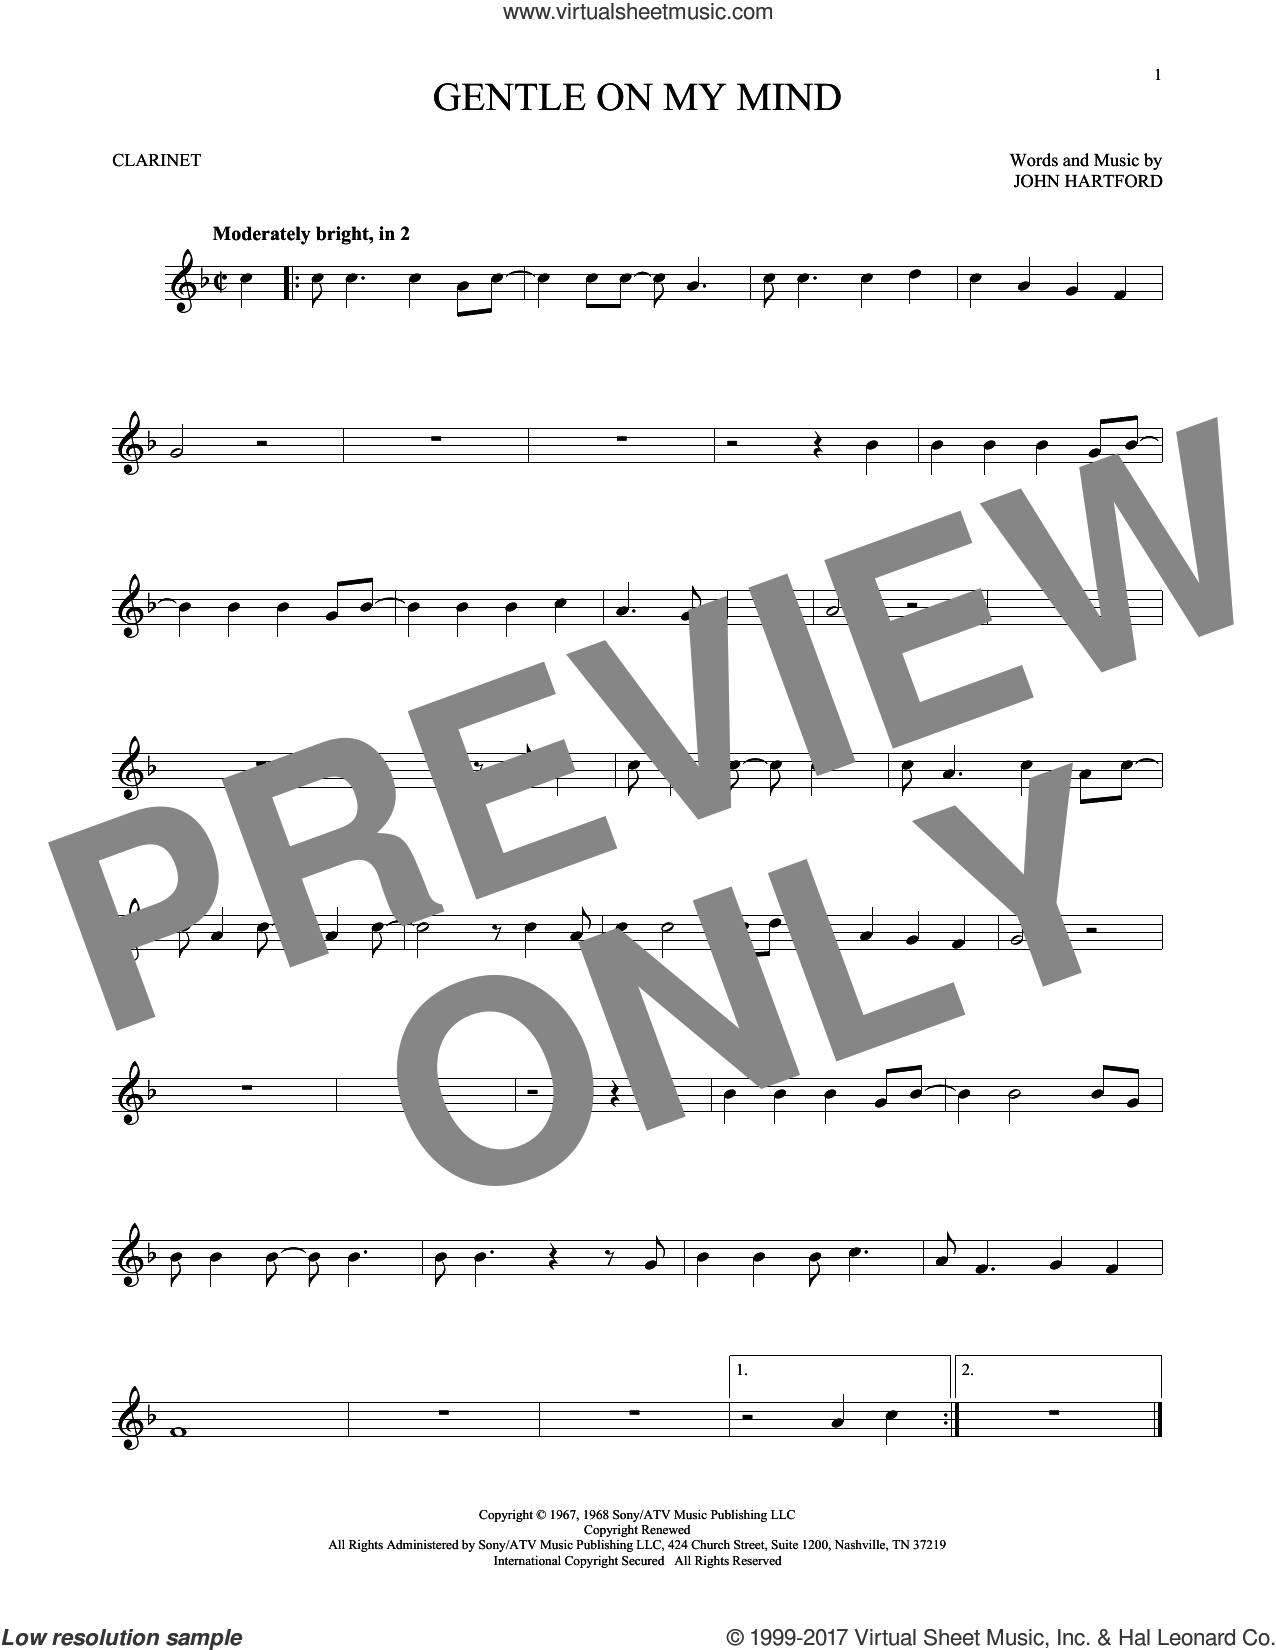 Gentle On My Mind sheet music for clarinet solo by Glen Campbell and John Hartford, intermediate skill level